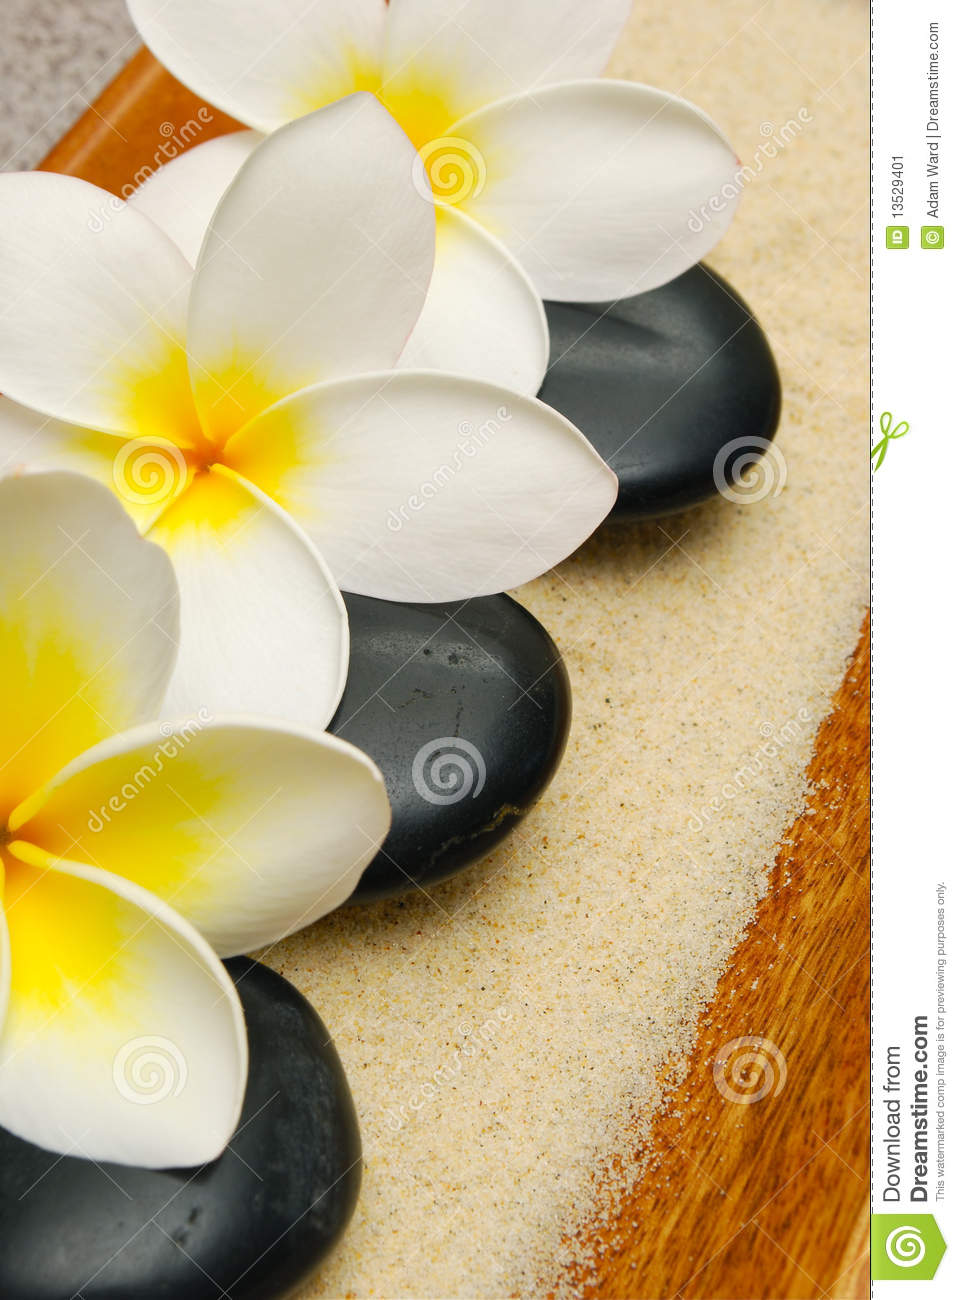 More similar stock images of ` Frangipani flowers and massage stones `